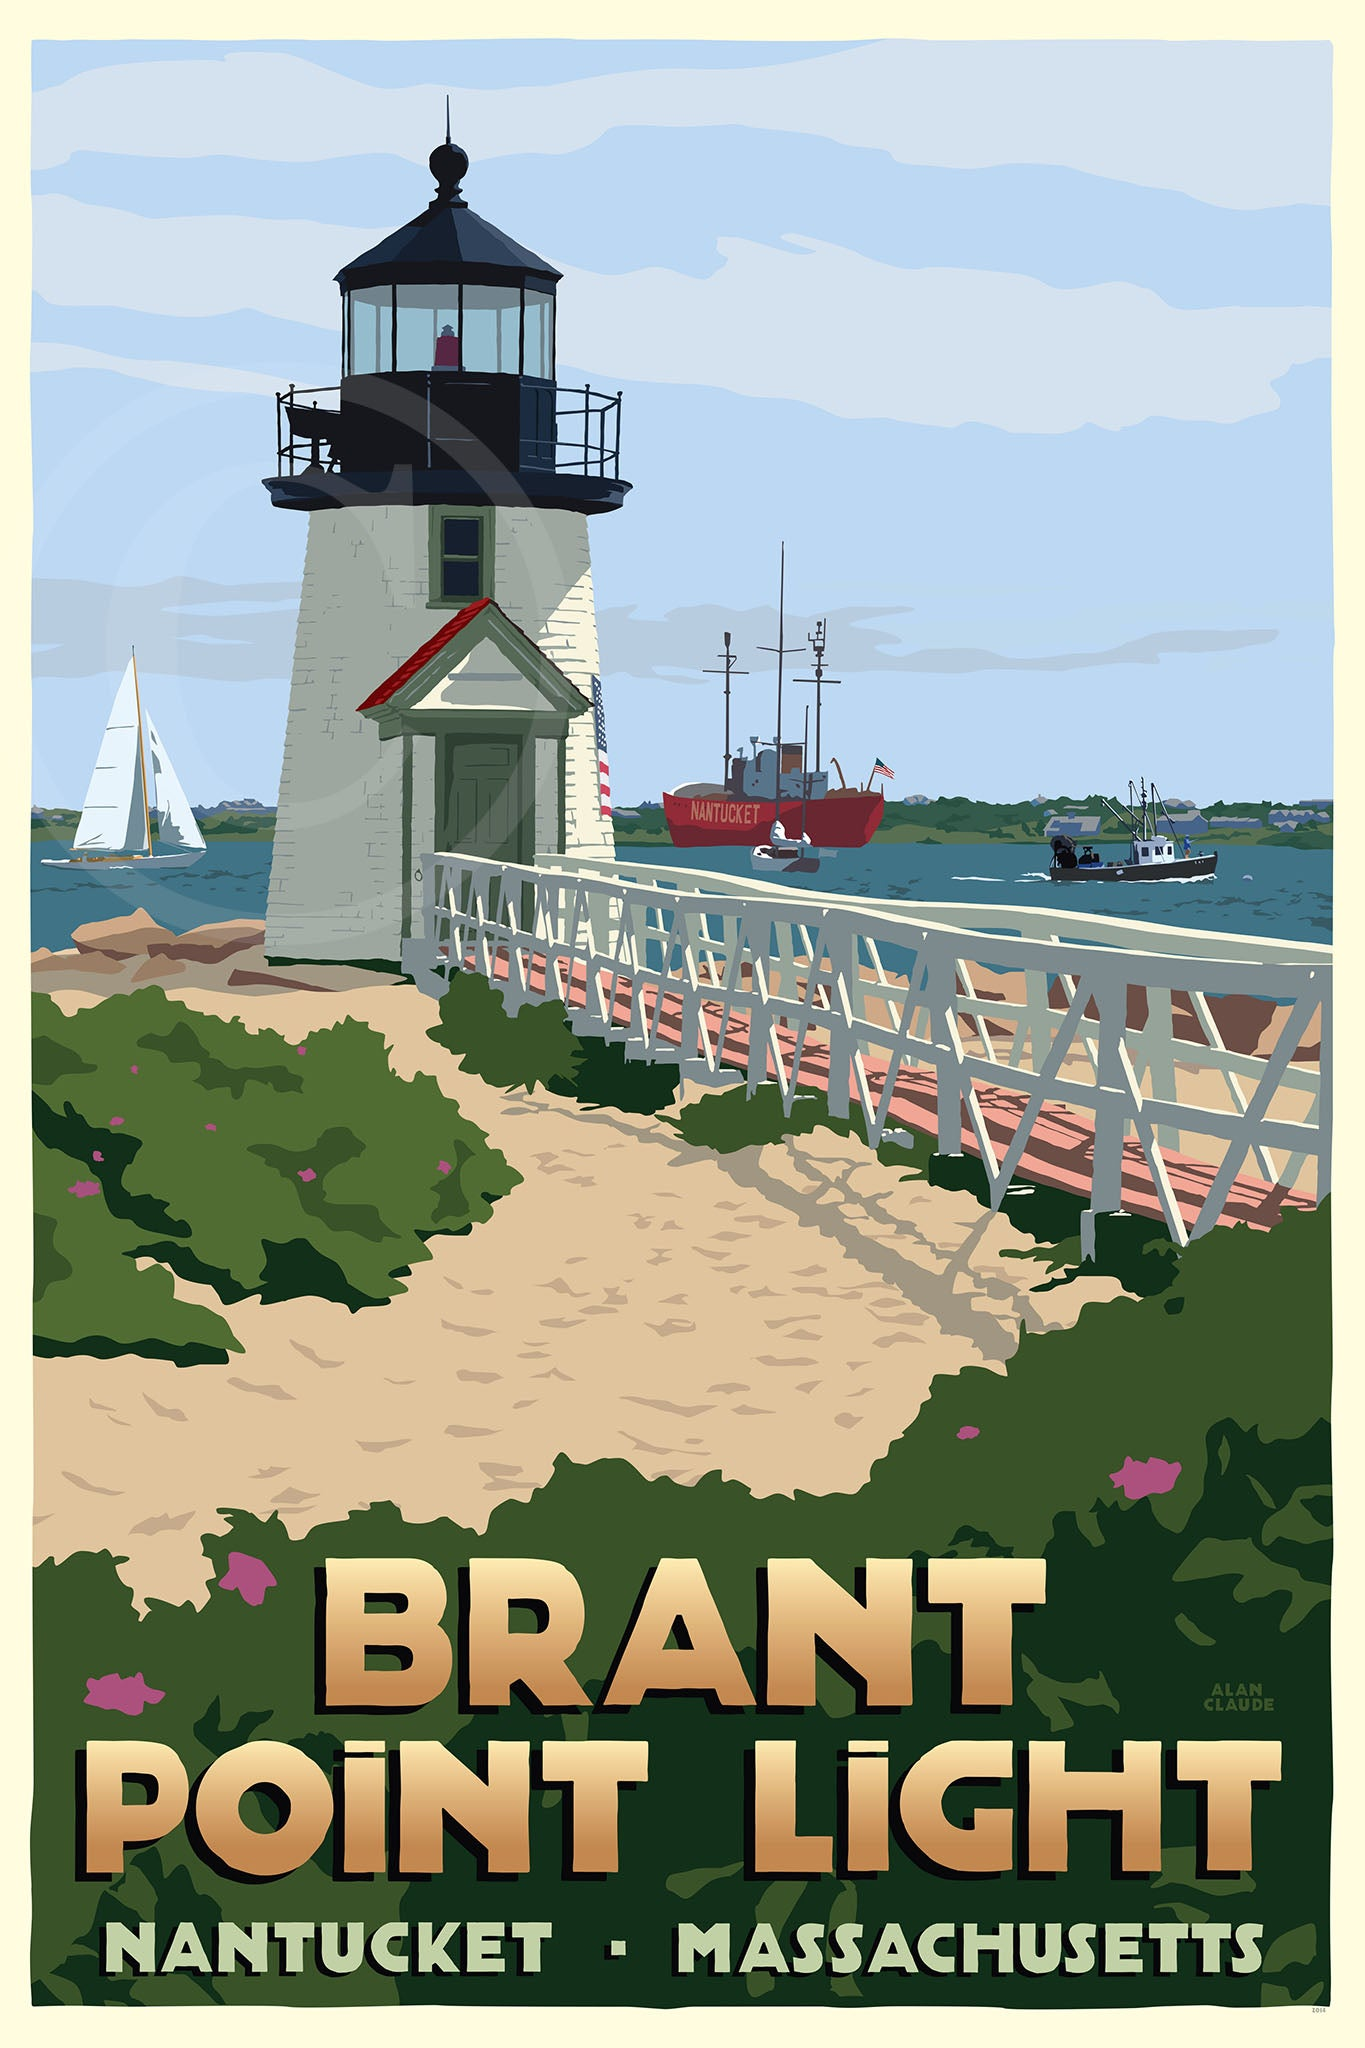 "Brant Point Light Art Print 24"" x 36"" Travel Poster - Massachusetts"